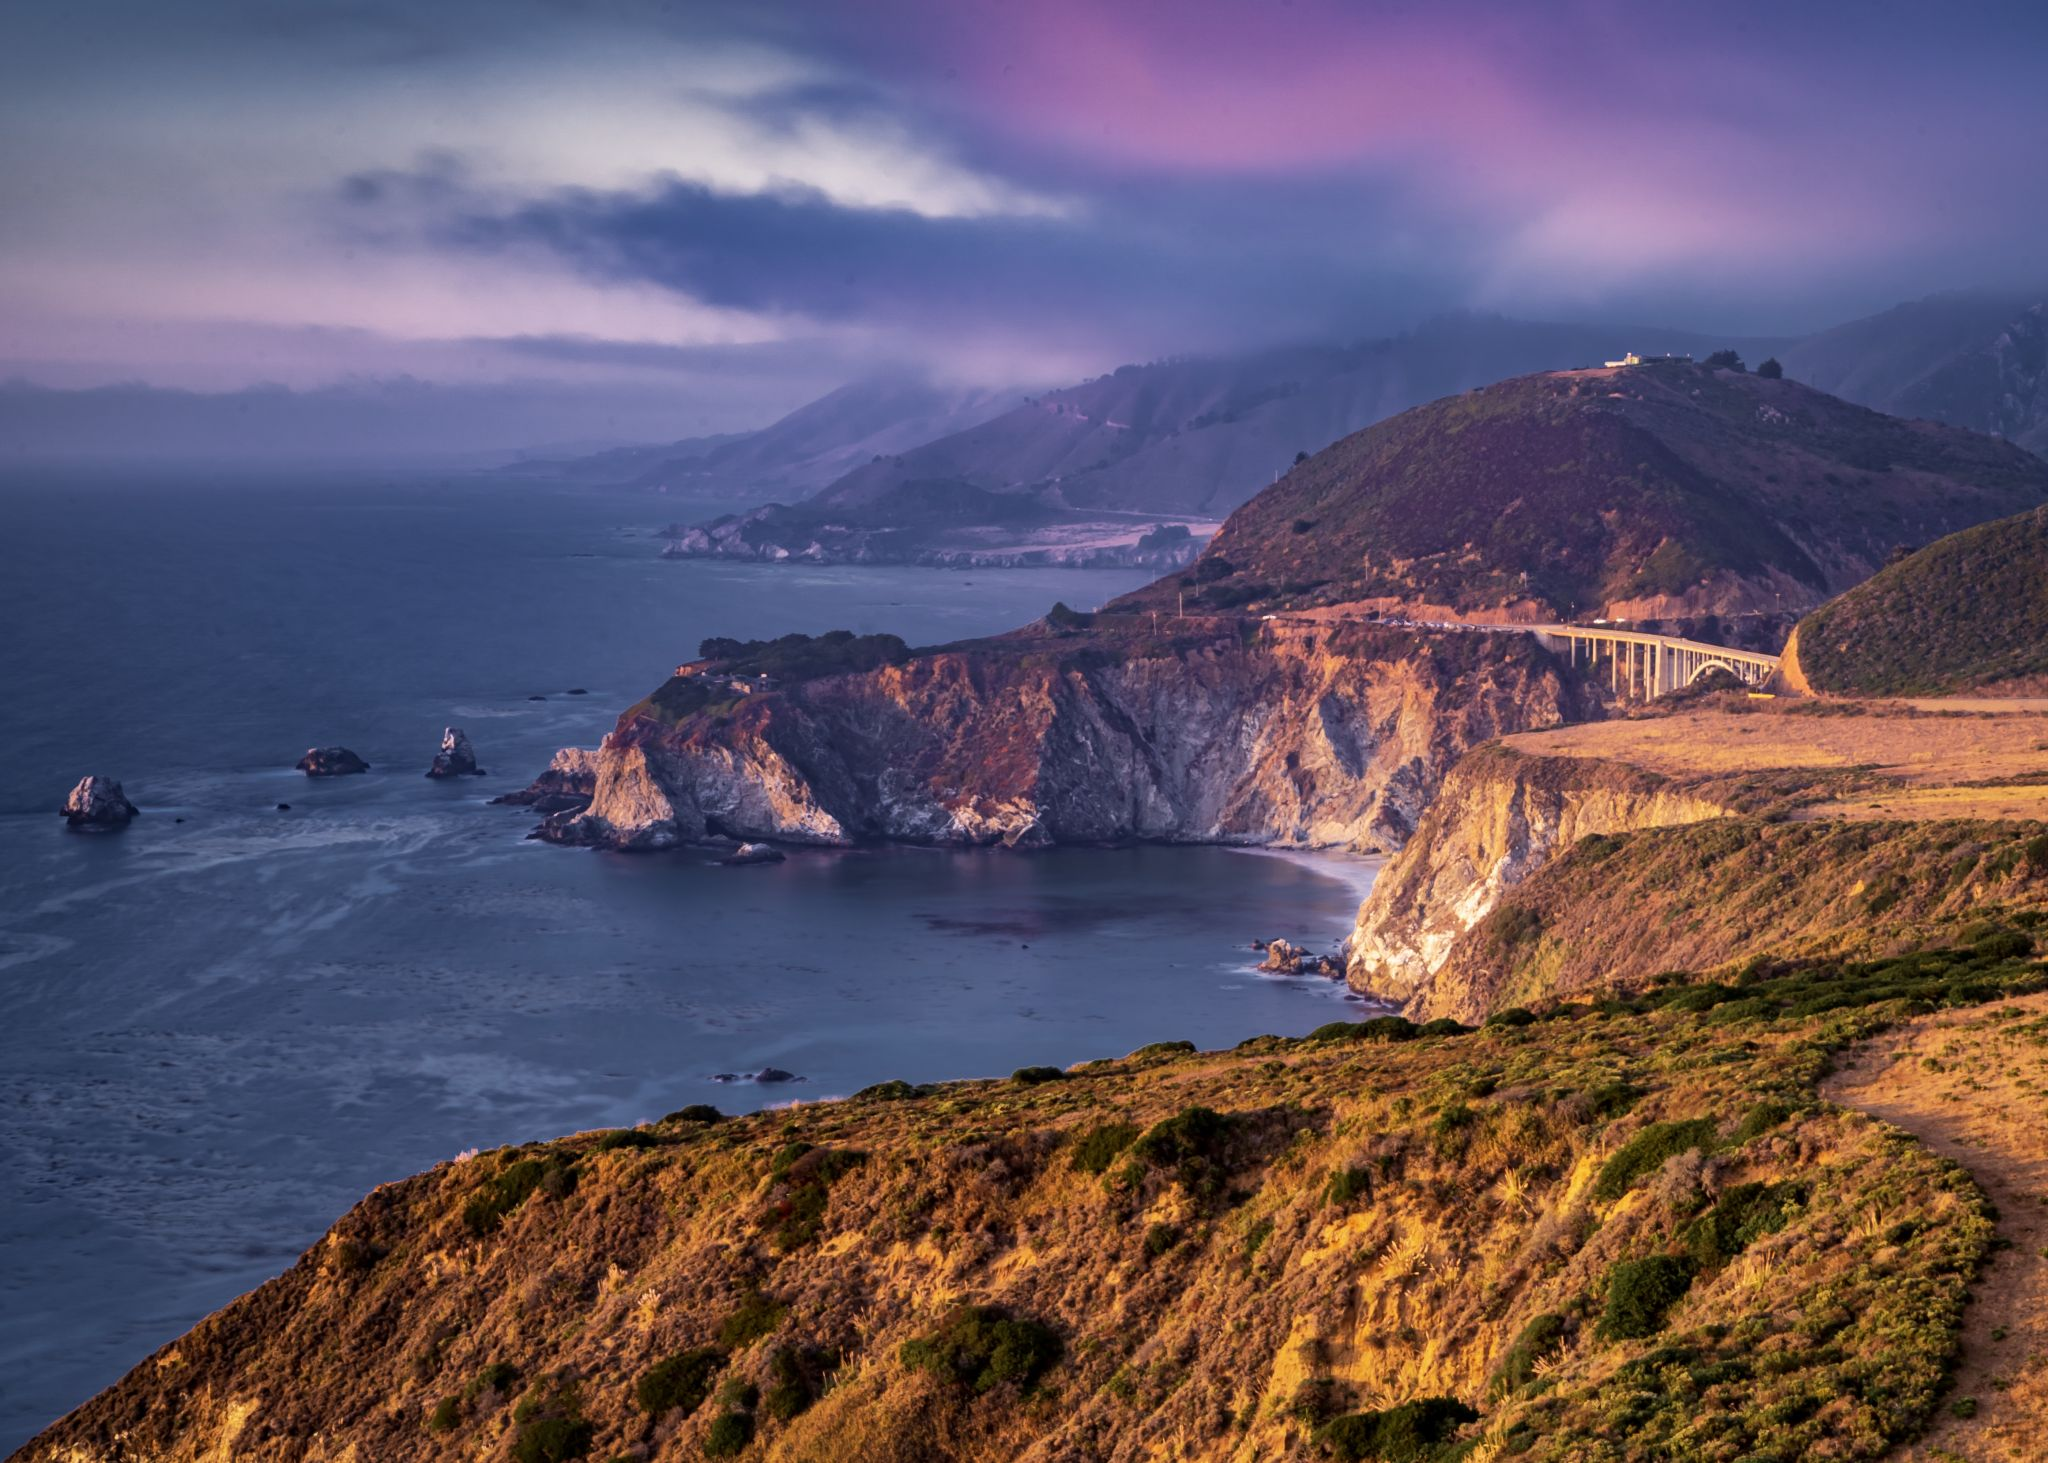 Bixby bridge from Hurricane Point view, USA